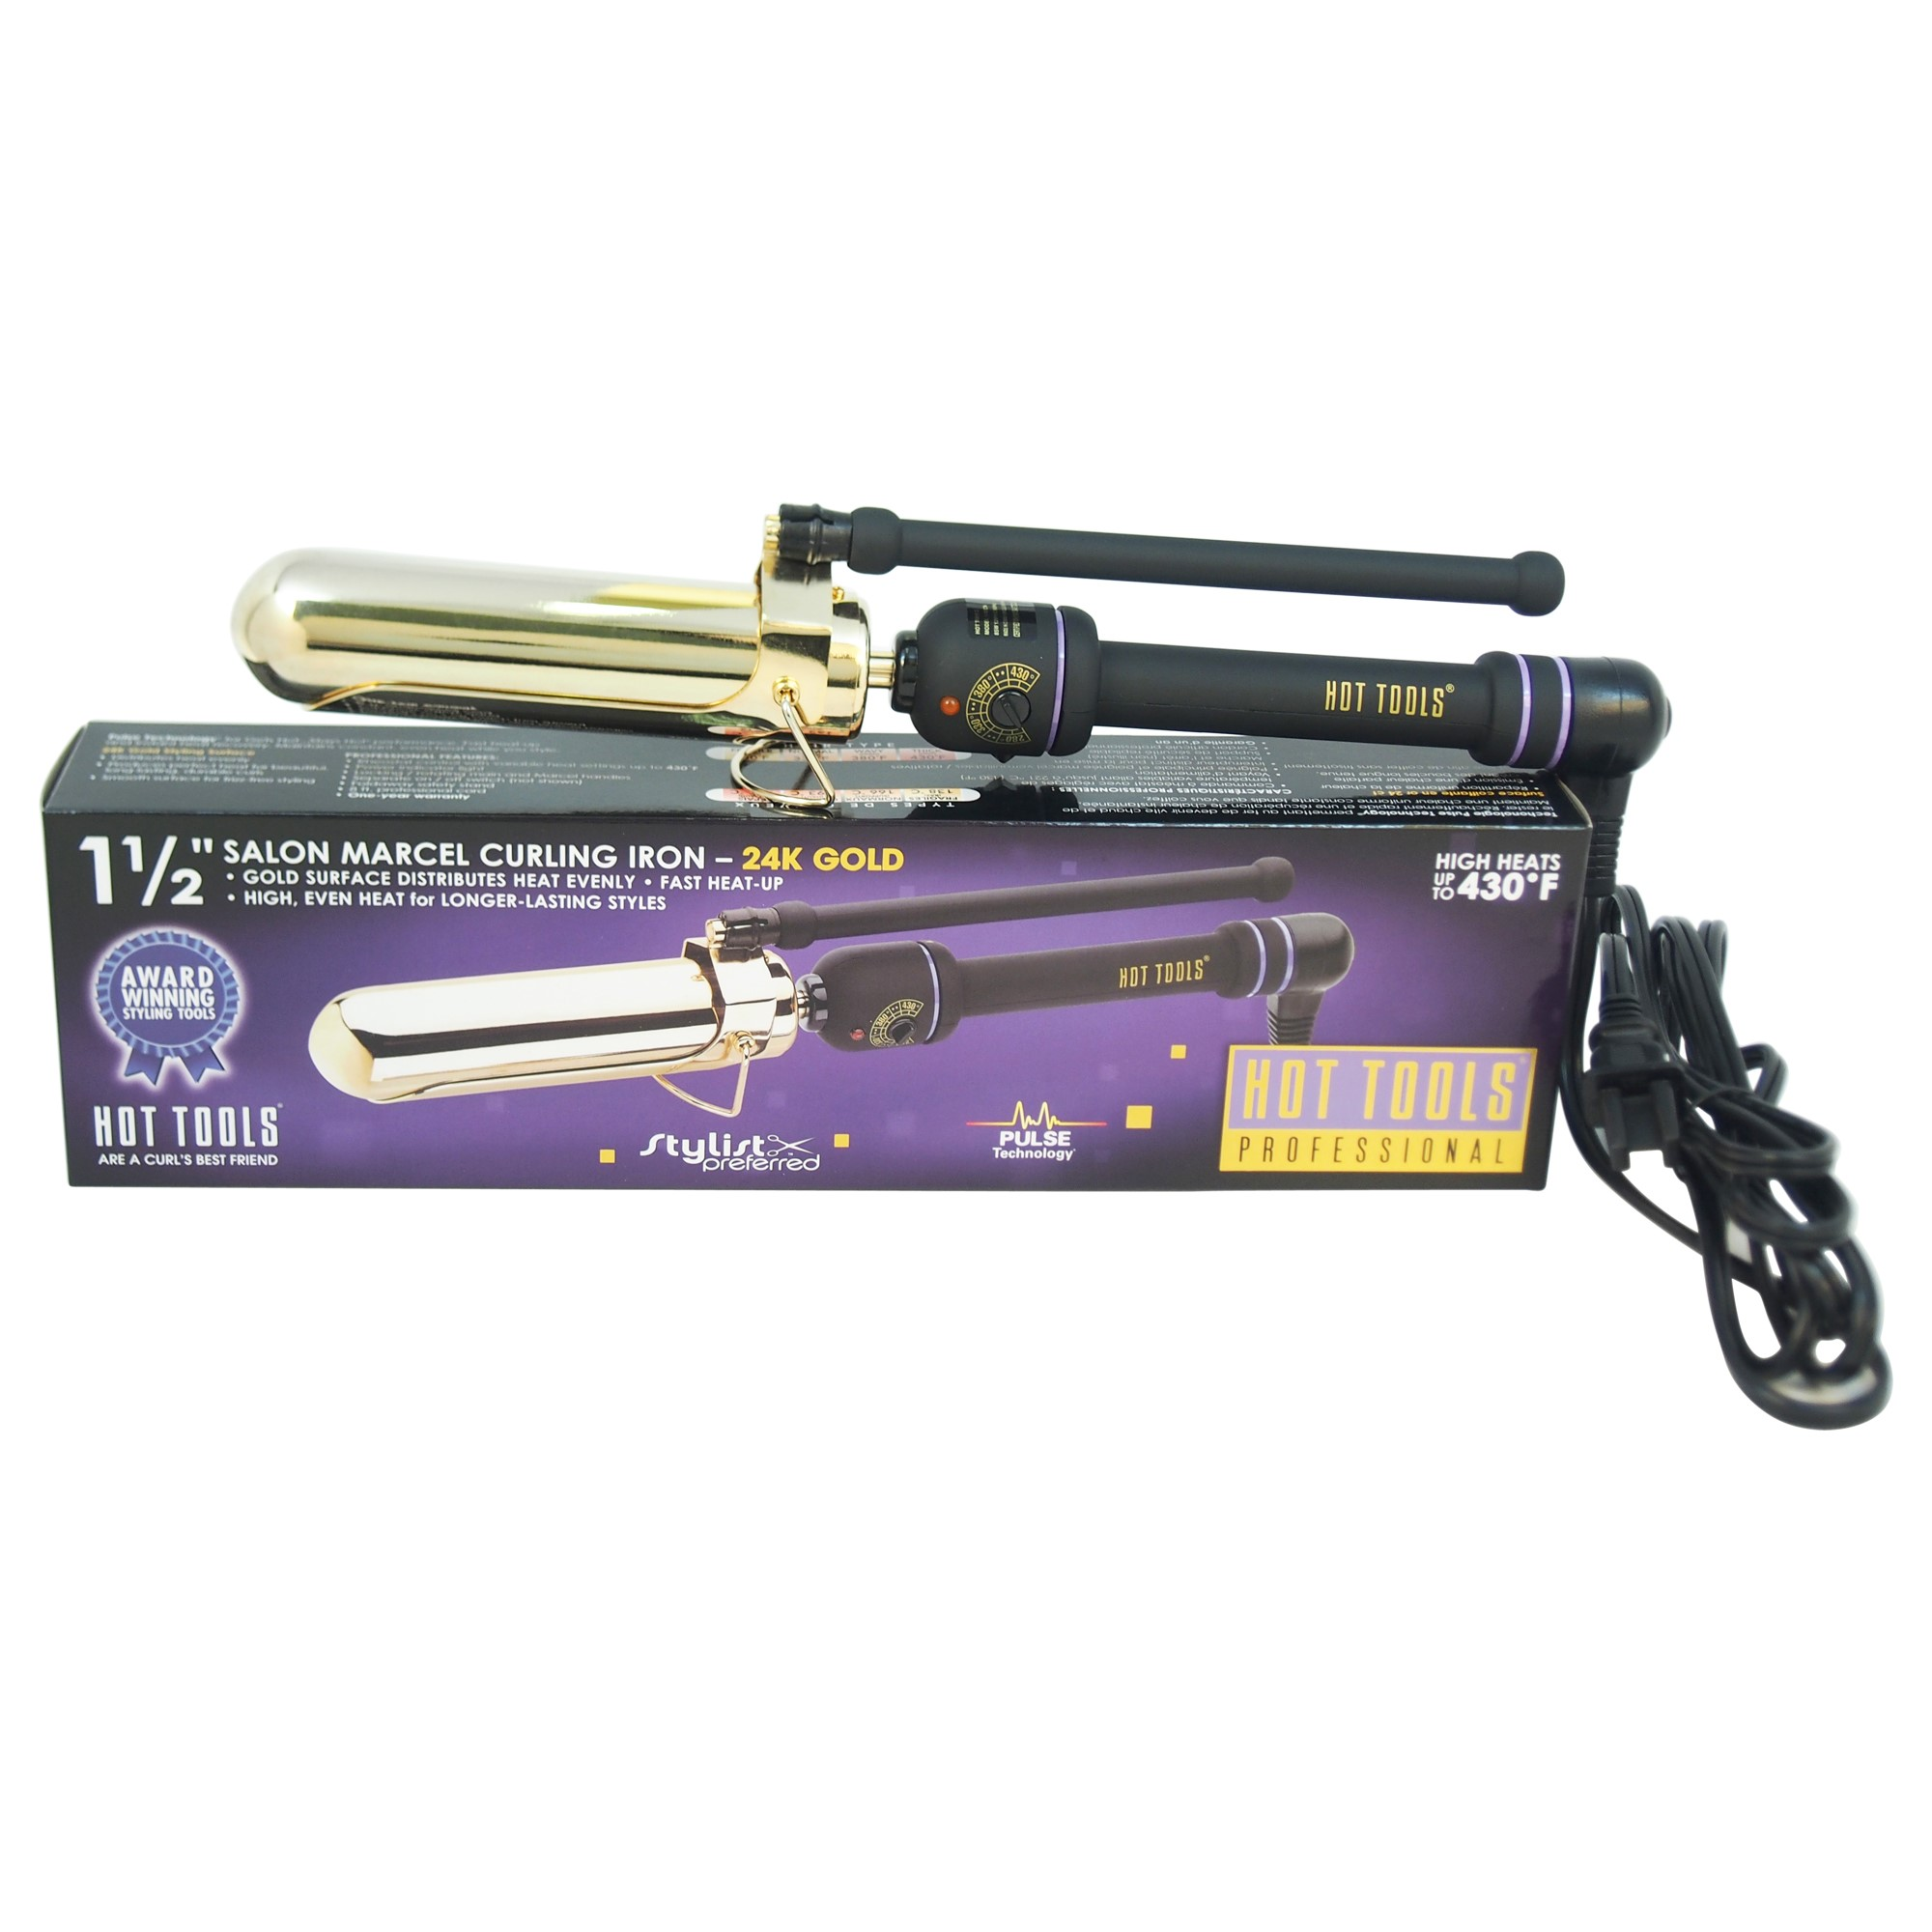 "Hot Tools Professional 1 1/2"" Marcel Curling Iron, Model #1182CN"